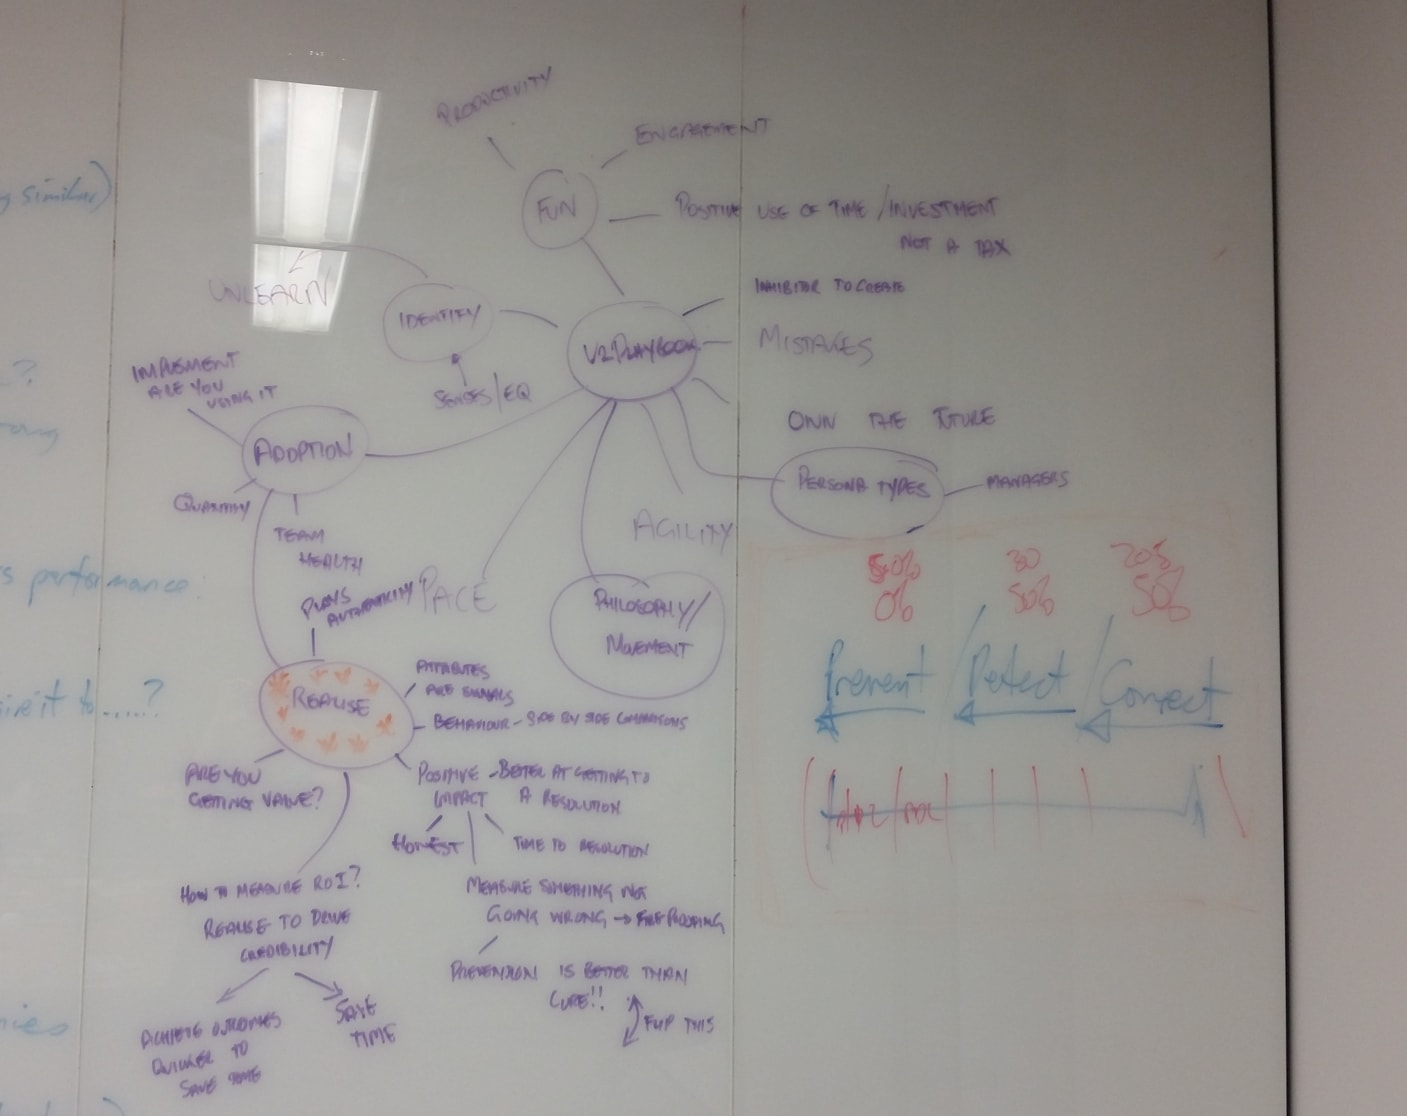 Example from a group mindmapping session.